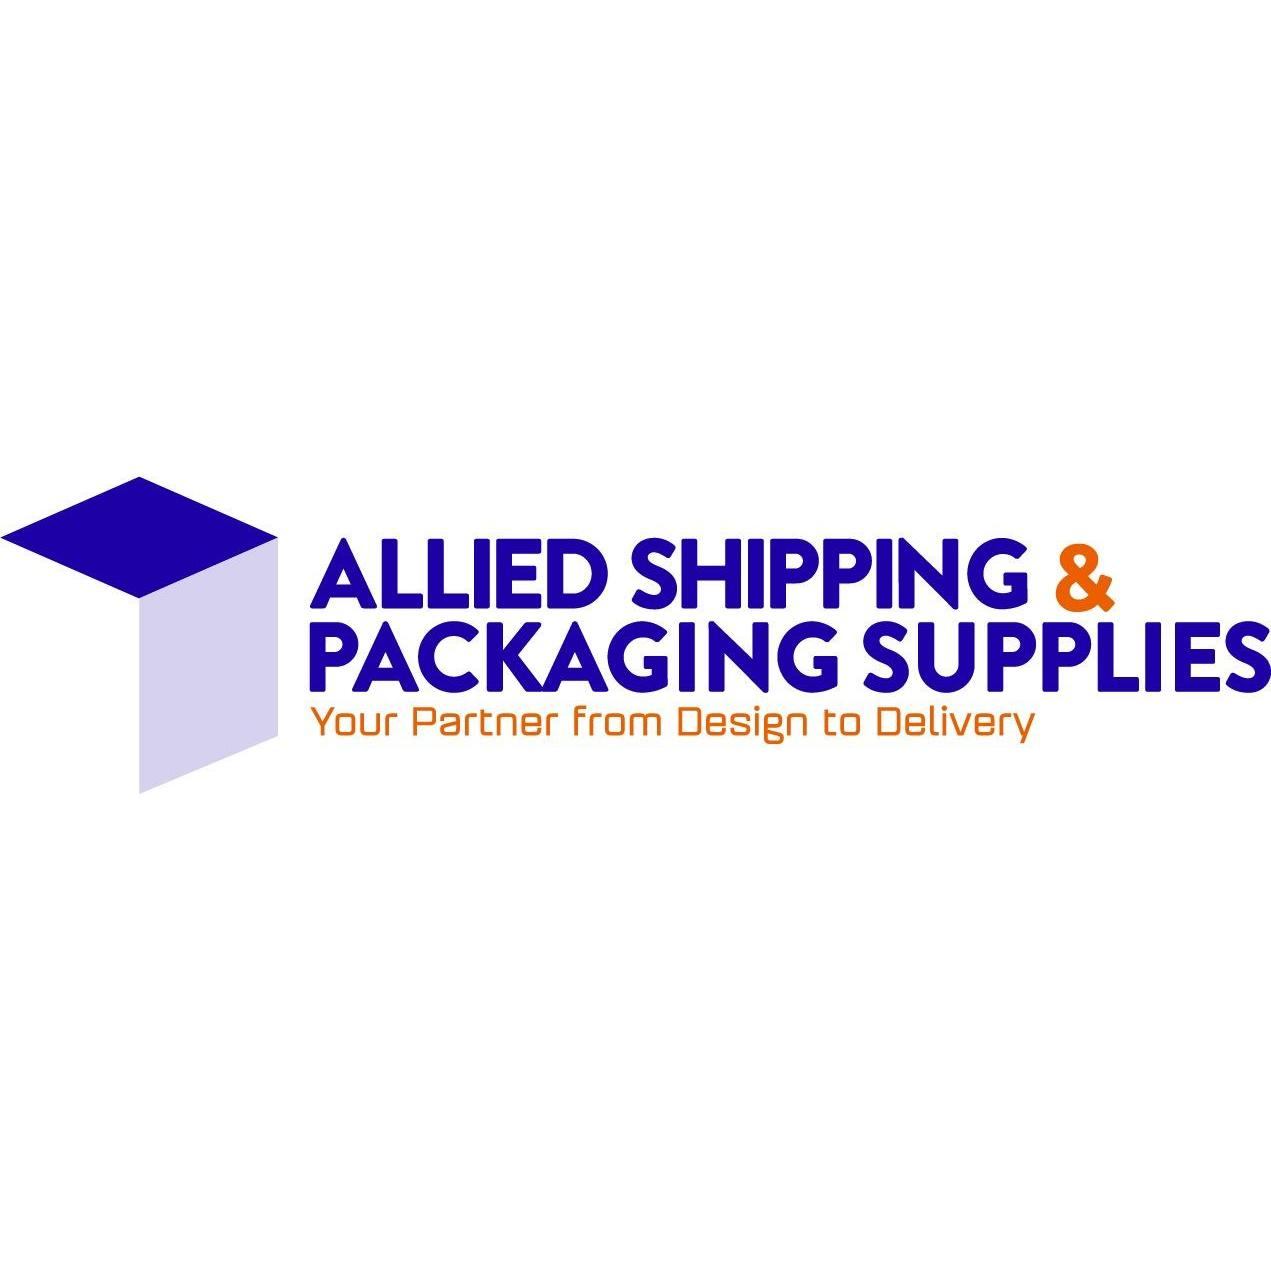 Allied Shipping & Packaging Supplies, Inc.